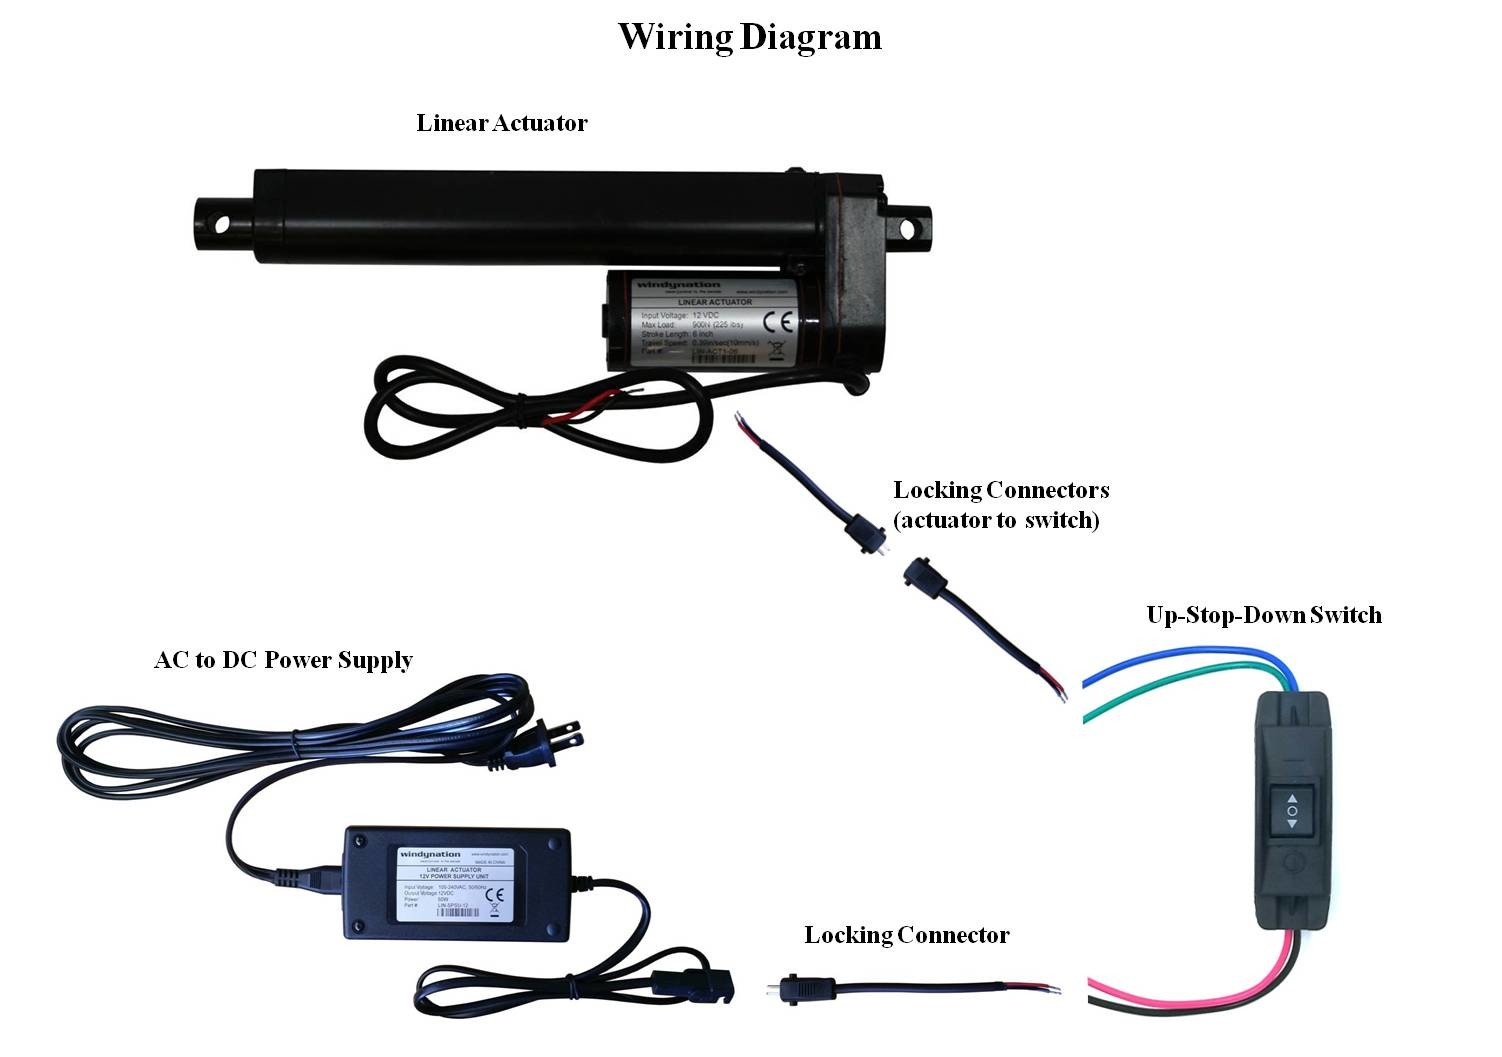 hight resolution of wiring 12 volt linear actuator limit switches mercedes 12 volt linear actuator wiring dc linear actuator wiring schematic